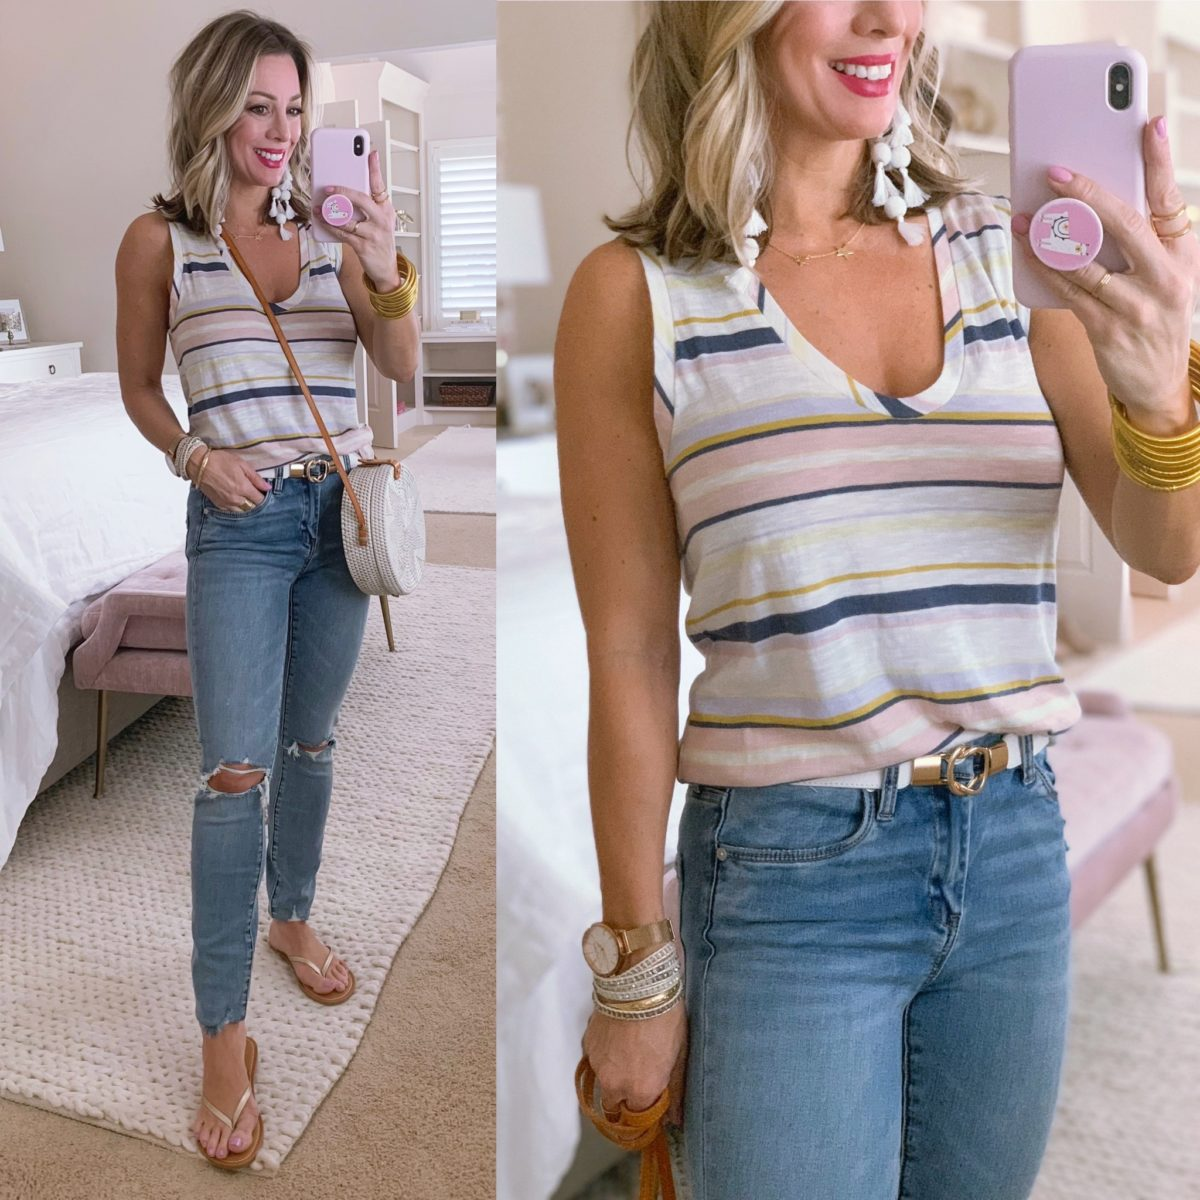 Caslon Stripe Tank V-neck, Distressed Skinny Jeans, Gold Flip Flops, woven Crossbody bag